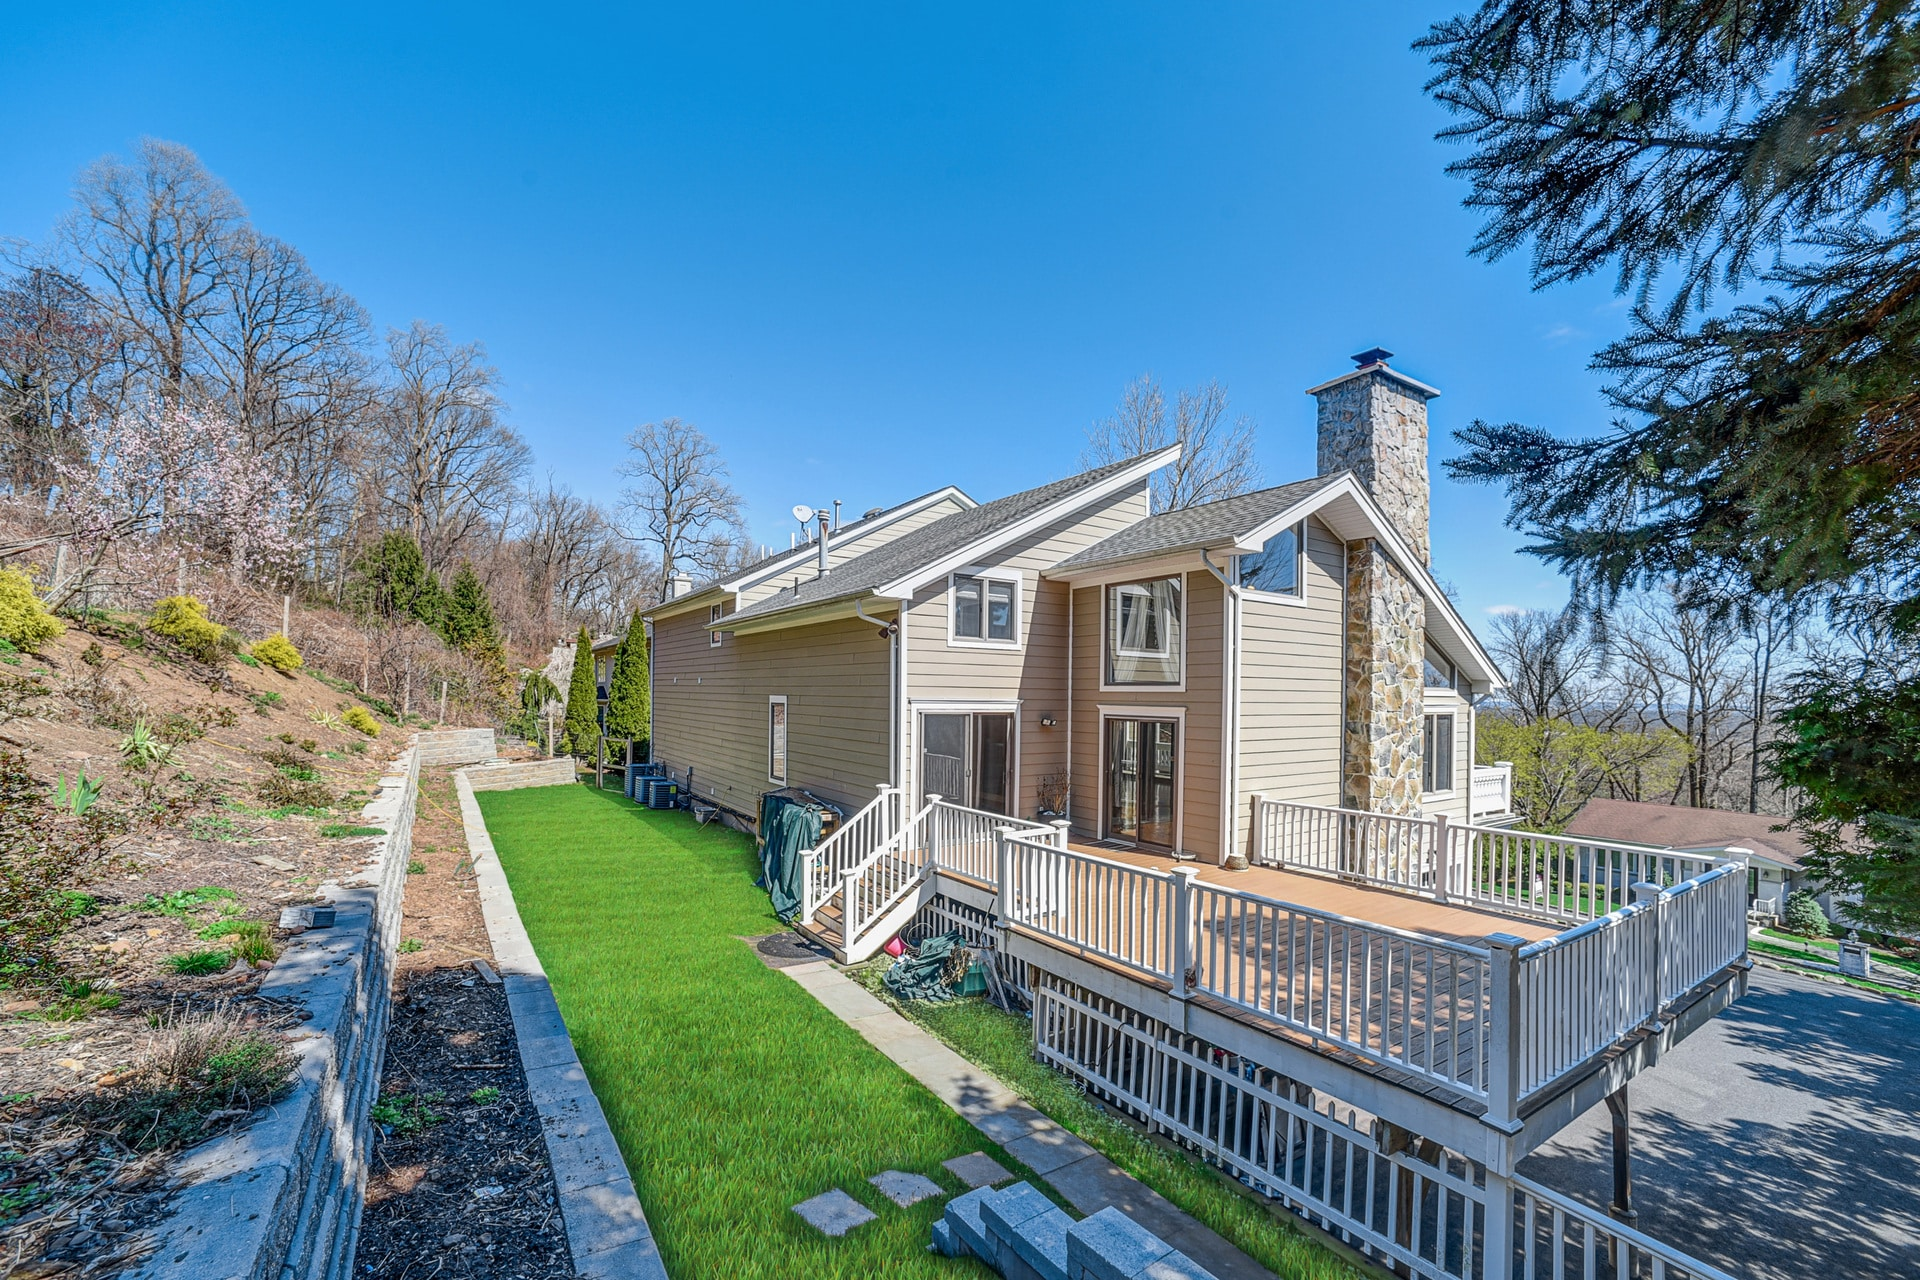 1004 Sunny Slope Dr, Mountainside Boro, NJ 07092